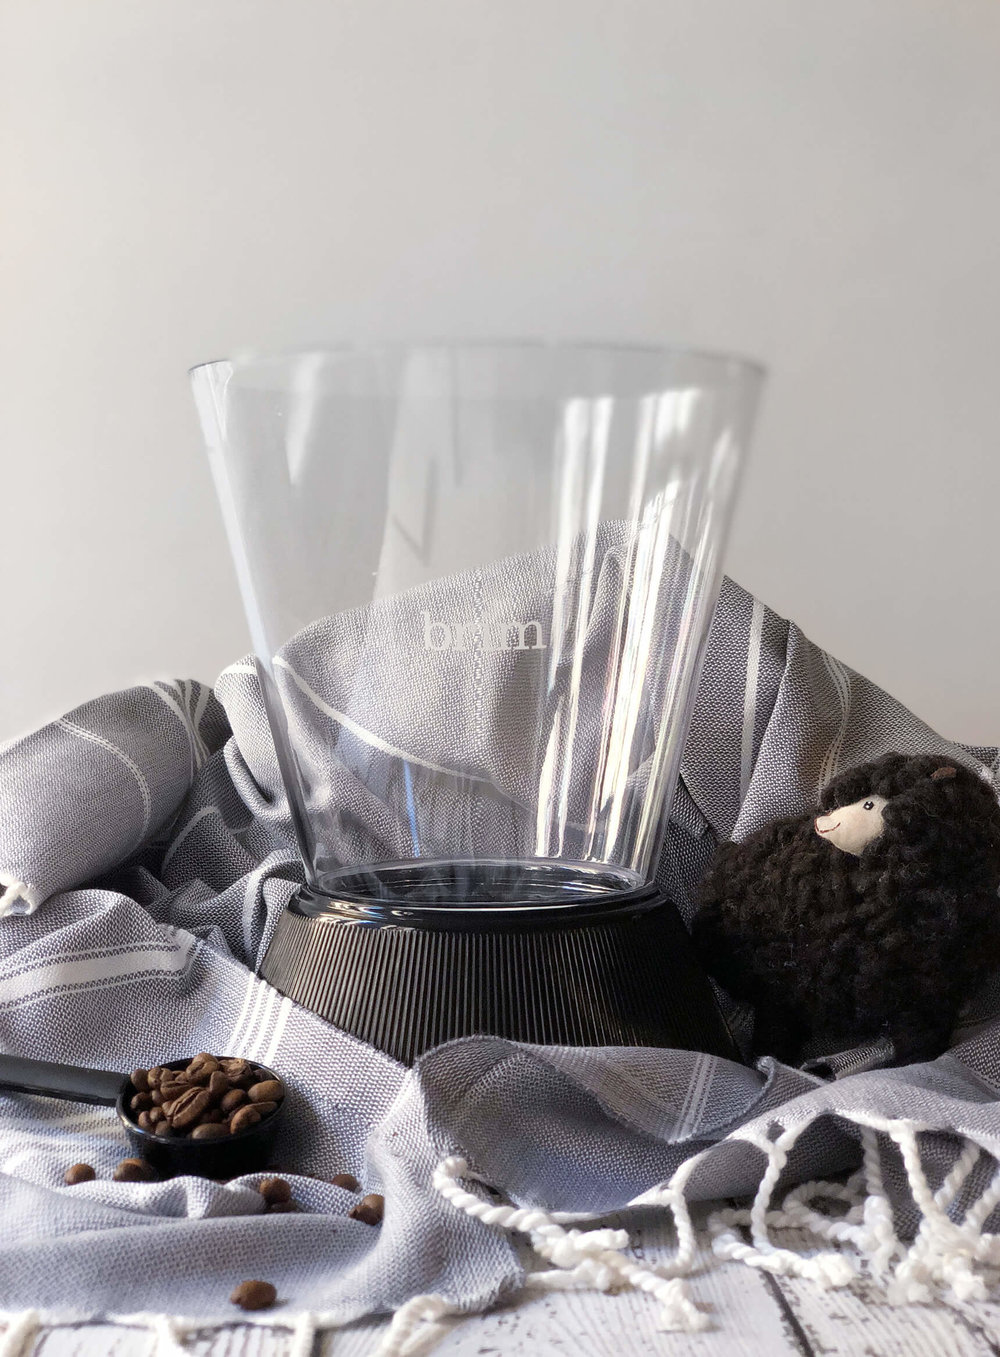 Brim Smart Valve Cold Brew Coffee Maker